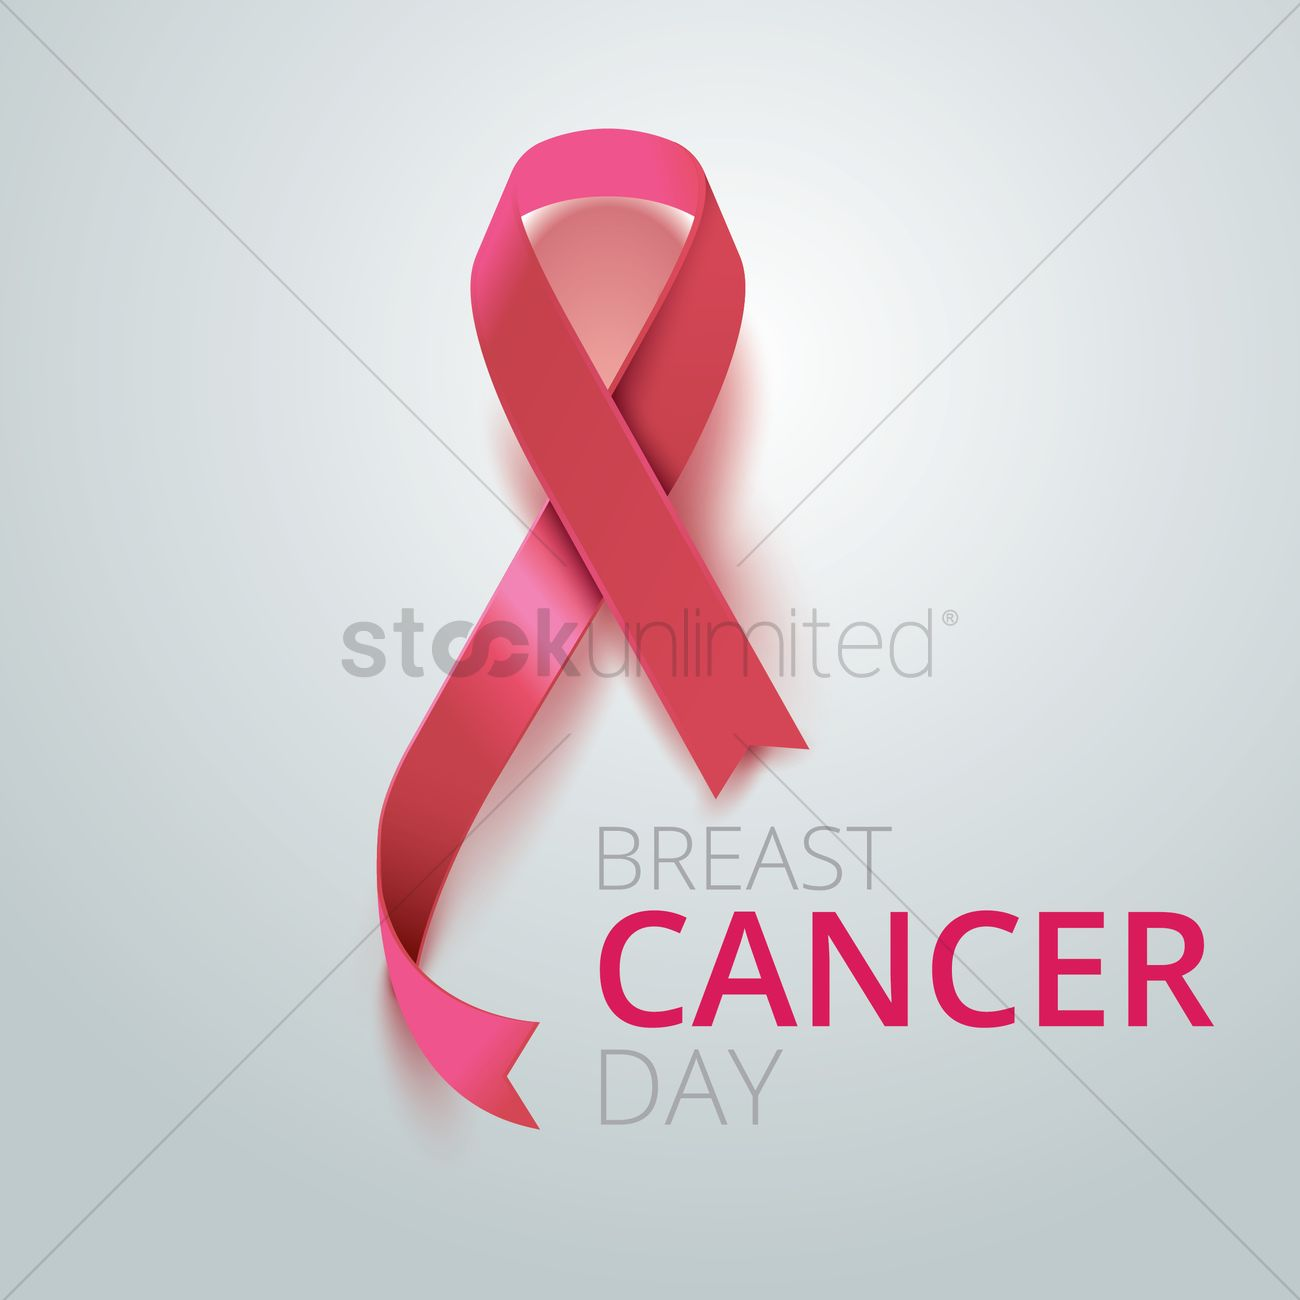 Breast cancer day ribbon design vector image 1962084 breast cancer day ribbon design vector graphic biocorpaavc Image collections